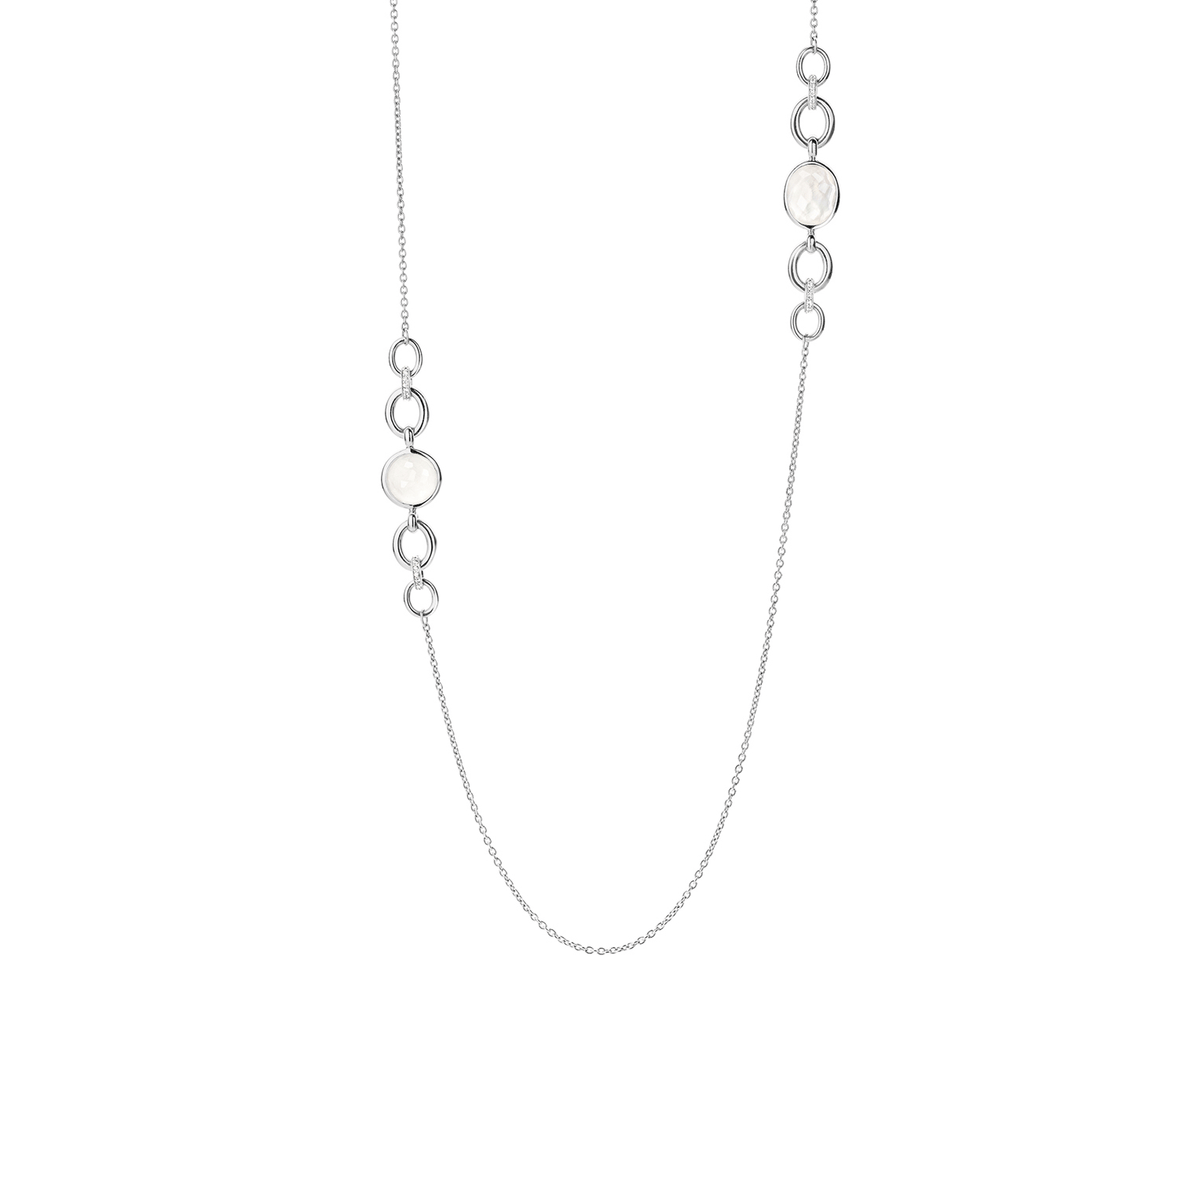 TI SENTO - Milano Necklace 3873MW